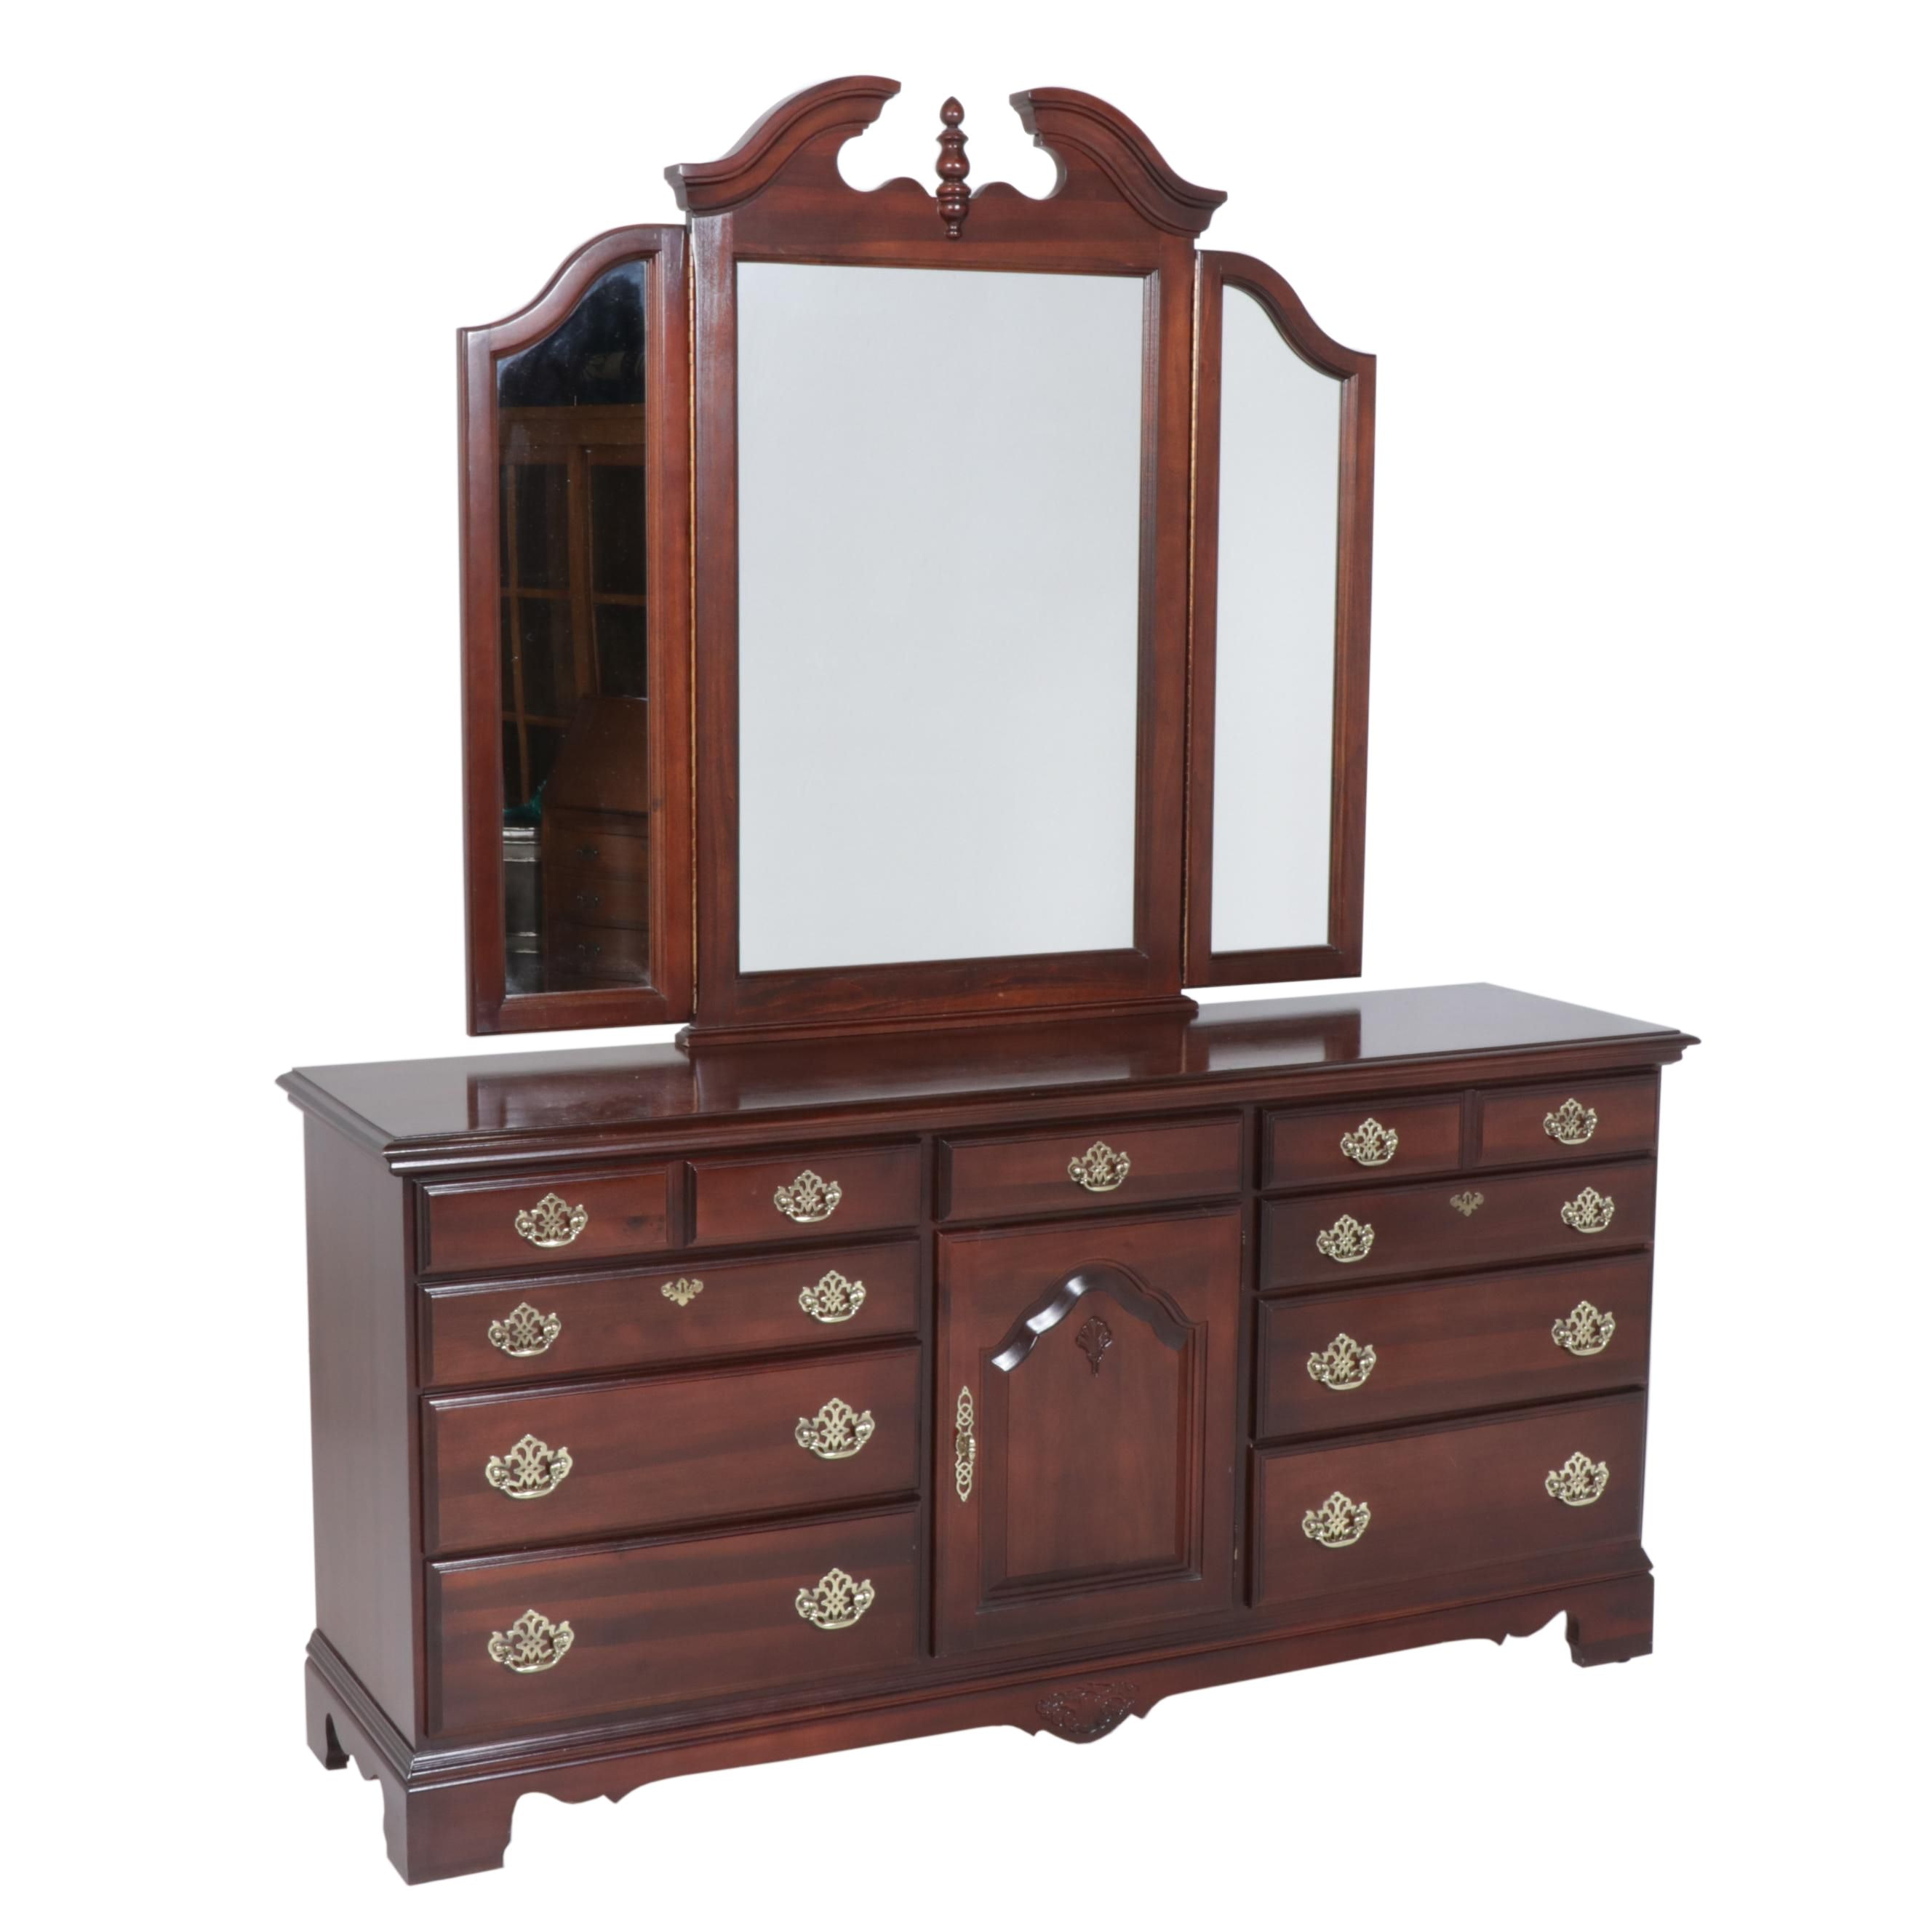 Contemporary Kincaid Mahogany-Finish Federal Style Chest of Drawers with Mirror